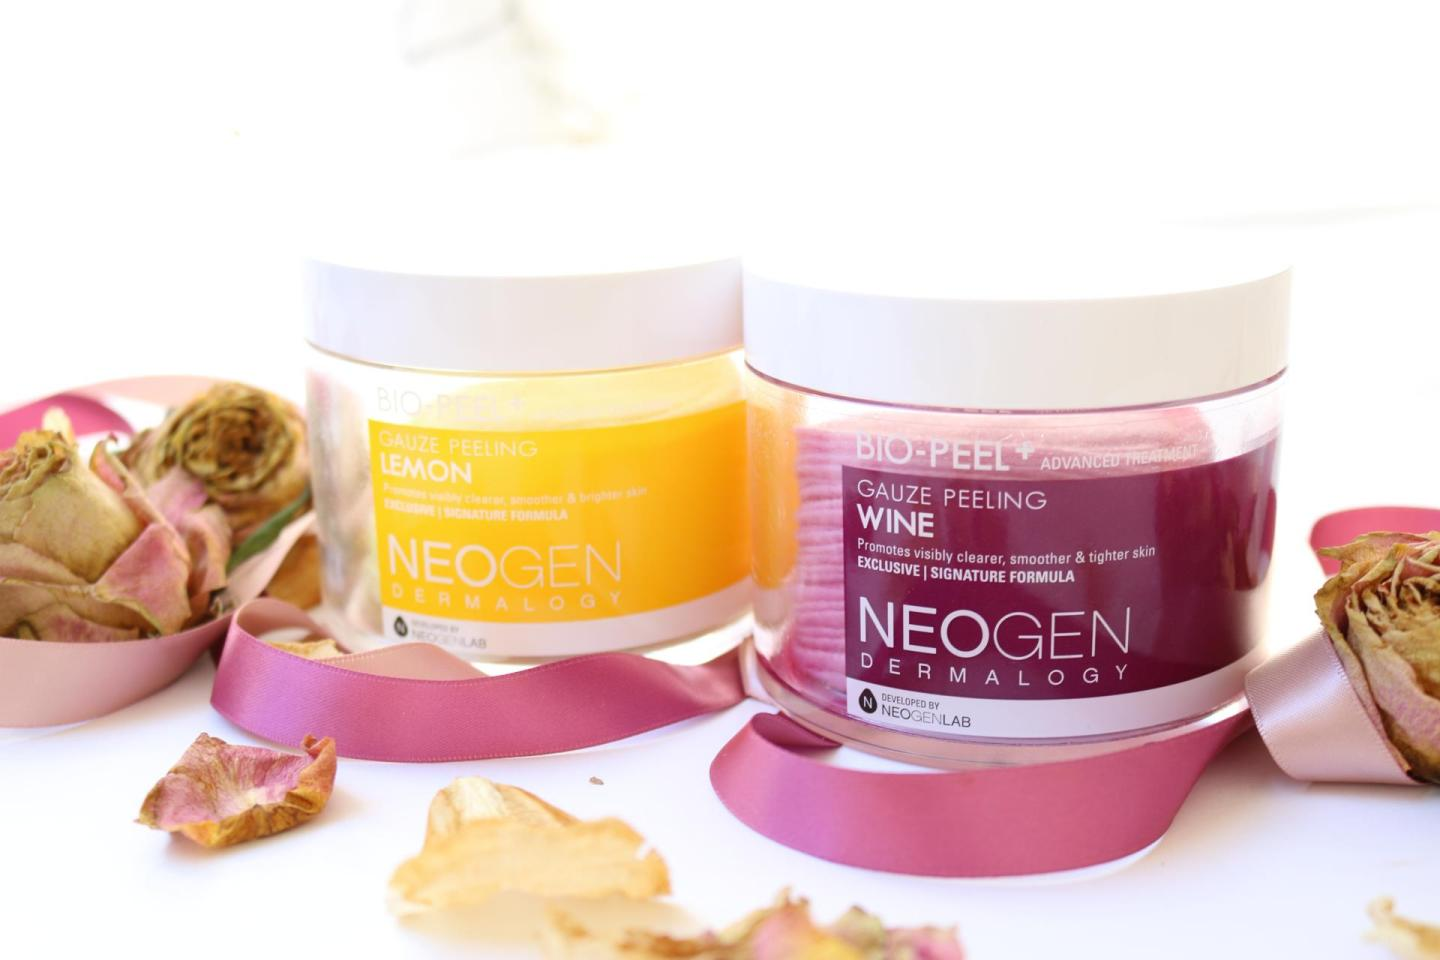 Neogen Gauze Peeling Wine & Lemon + INT. GIVEAWAY